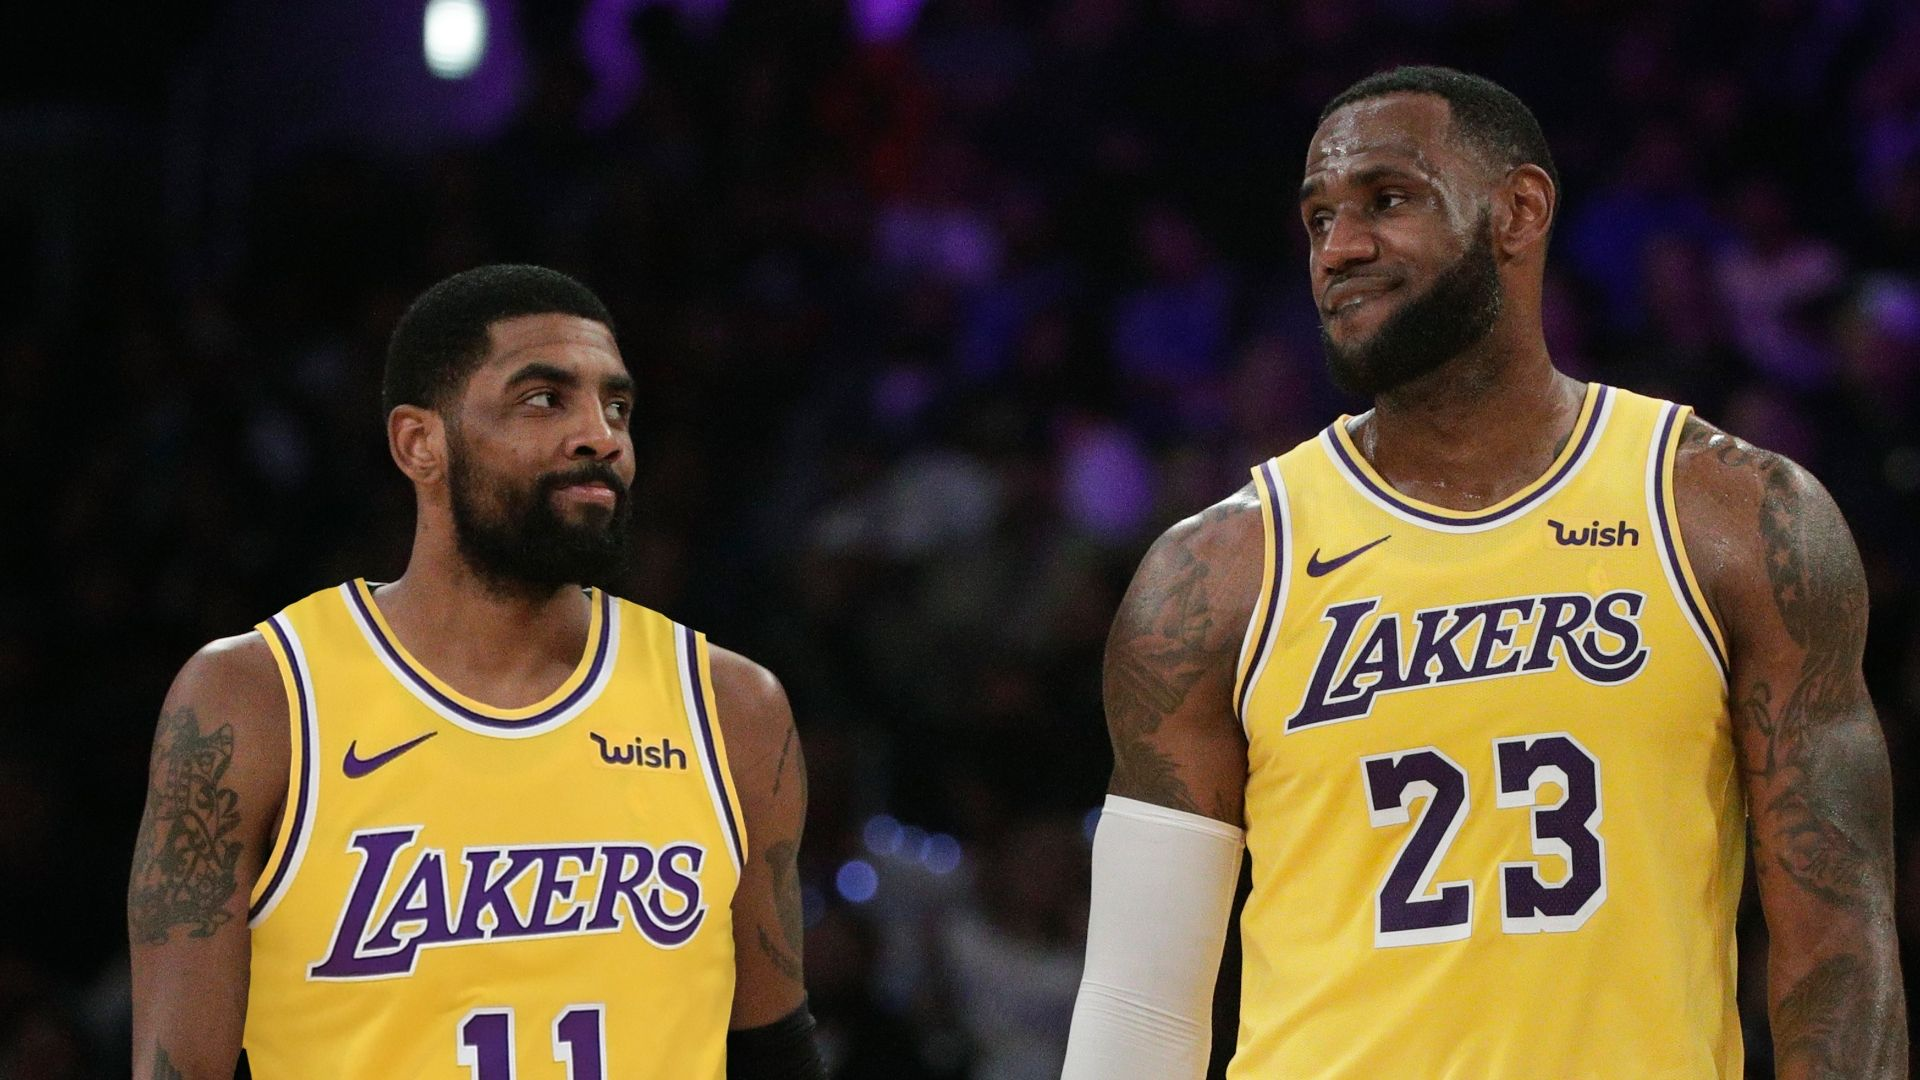 b3c7e73854e Should Kyrie reunite with LeBron on the Lakers? - ESPN Video